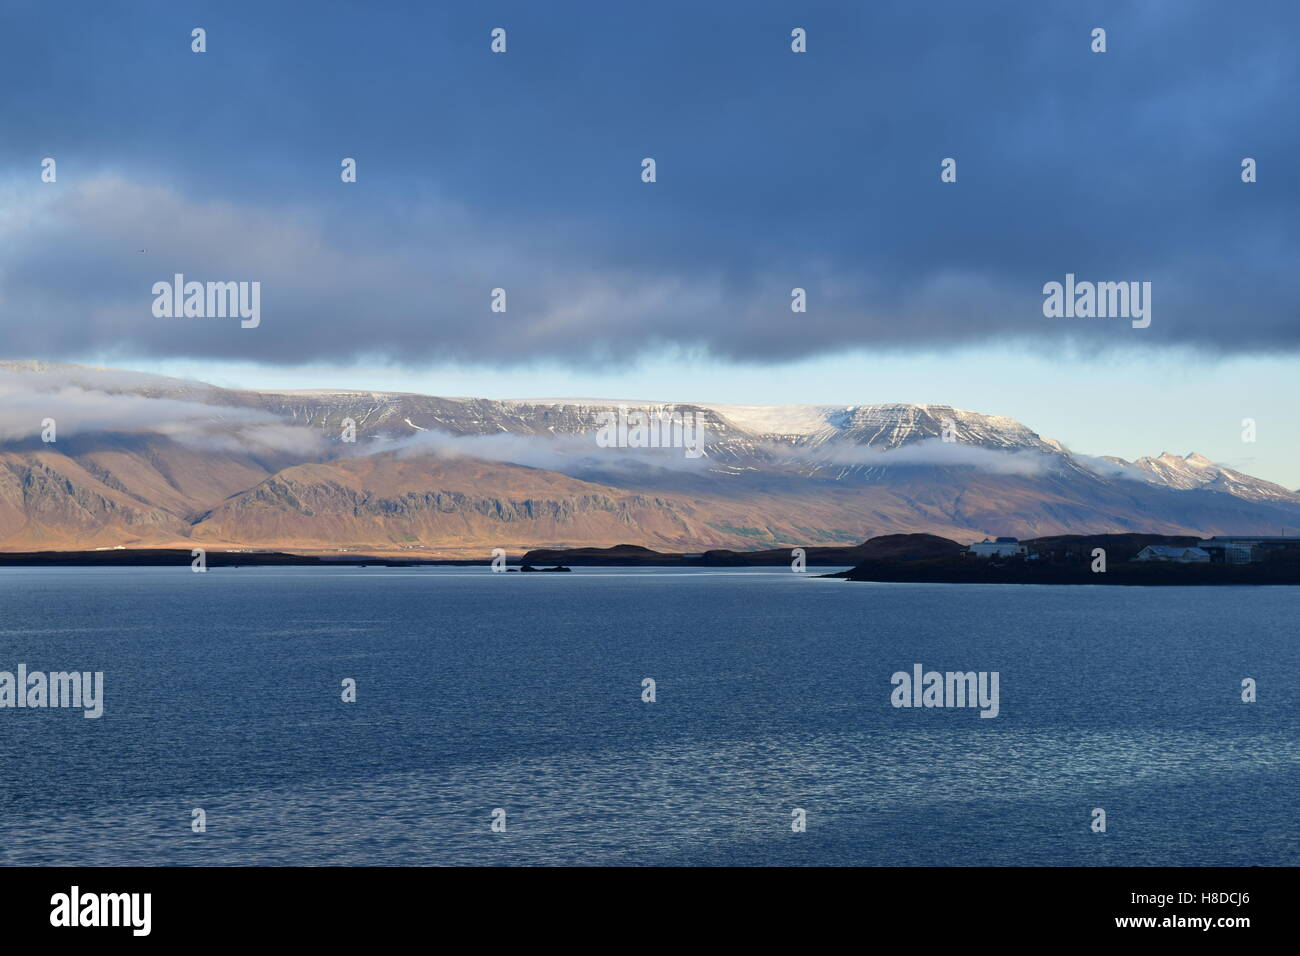 on the shore overlooking snowy mountains with cloud cover. - Stock Image